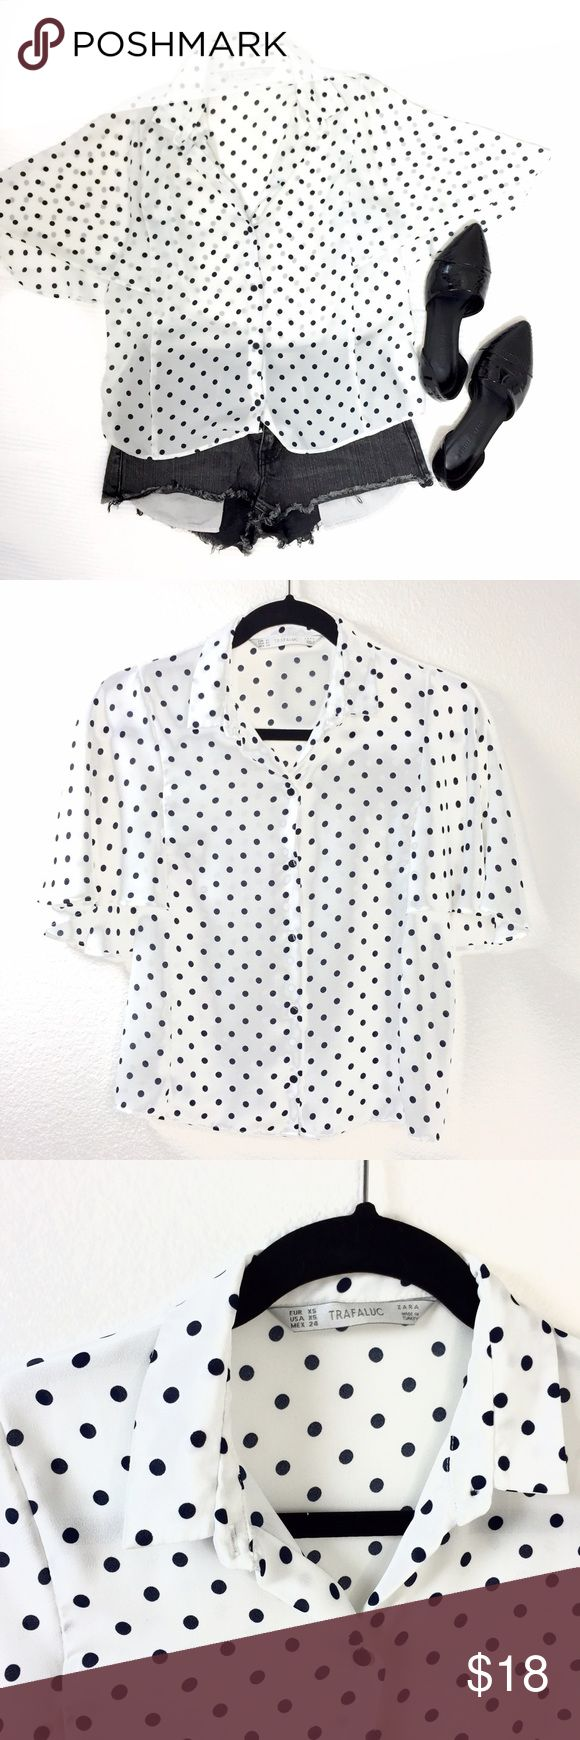 "ZARA Polka Dot Batwing Top NO TRADES. NO PAYPAL. NO EXCEPTIONS.   ZARA flowy navy and white sheer polka dot batwing top. Size XS. In excellent condition. Approx 18"" across chest and 22"" in length. Other items in photo are also listed in my PM closet.  Please be considerate when making an offer. Poshmark takes 20% on each sale, and I price the items in my closet pretty fairly especially the condition that they're in. Bundle for additional discount and to save on shipping. Zara Tops Blouses"